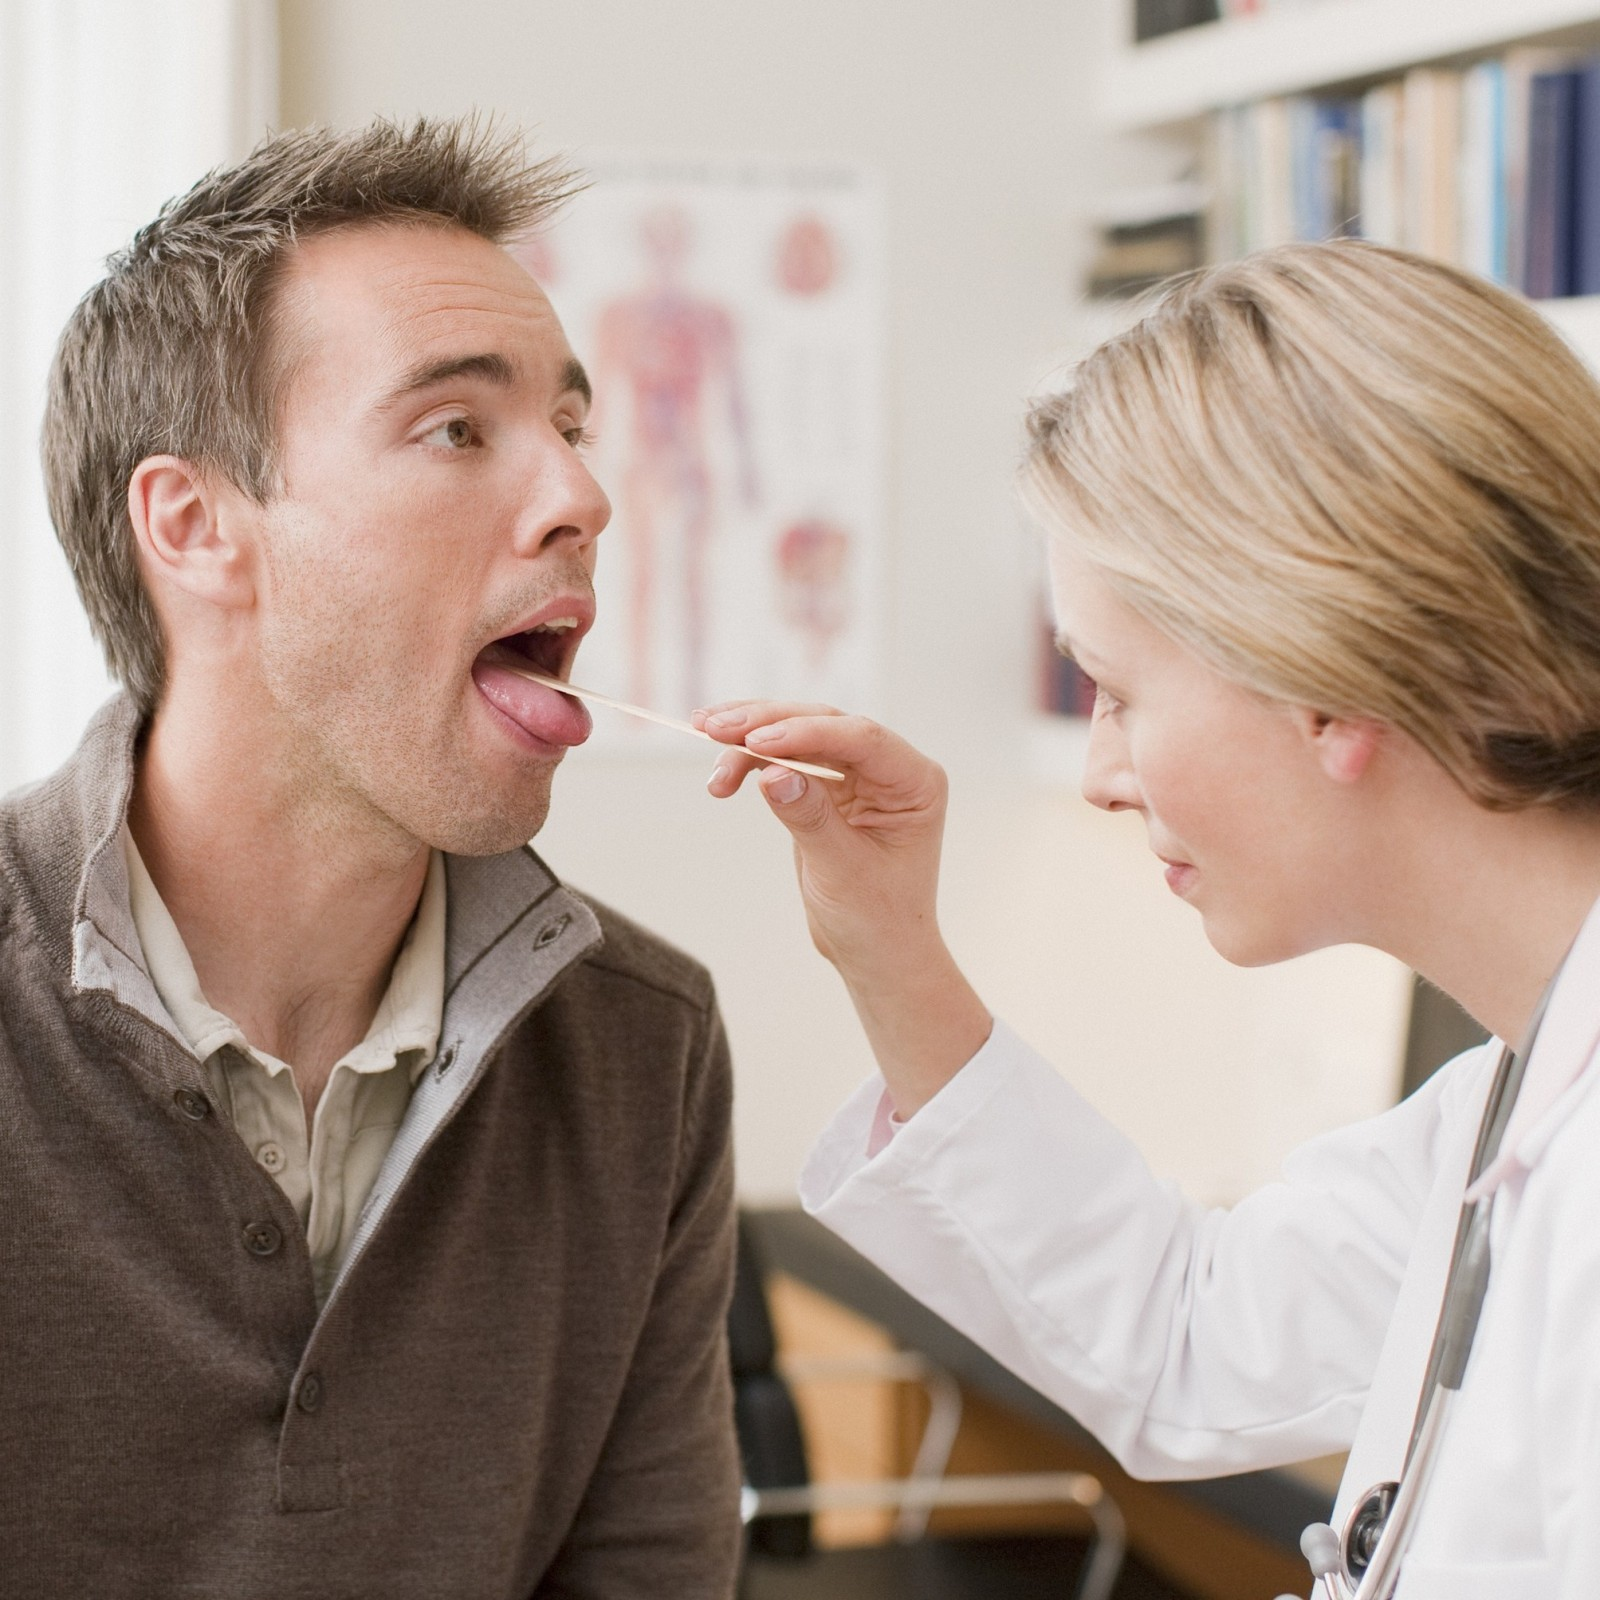 Aphthous Ulcers (Canker Sores) - POZ